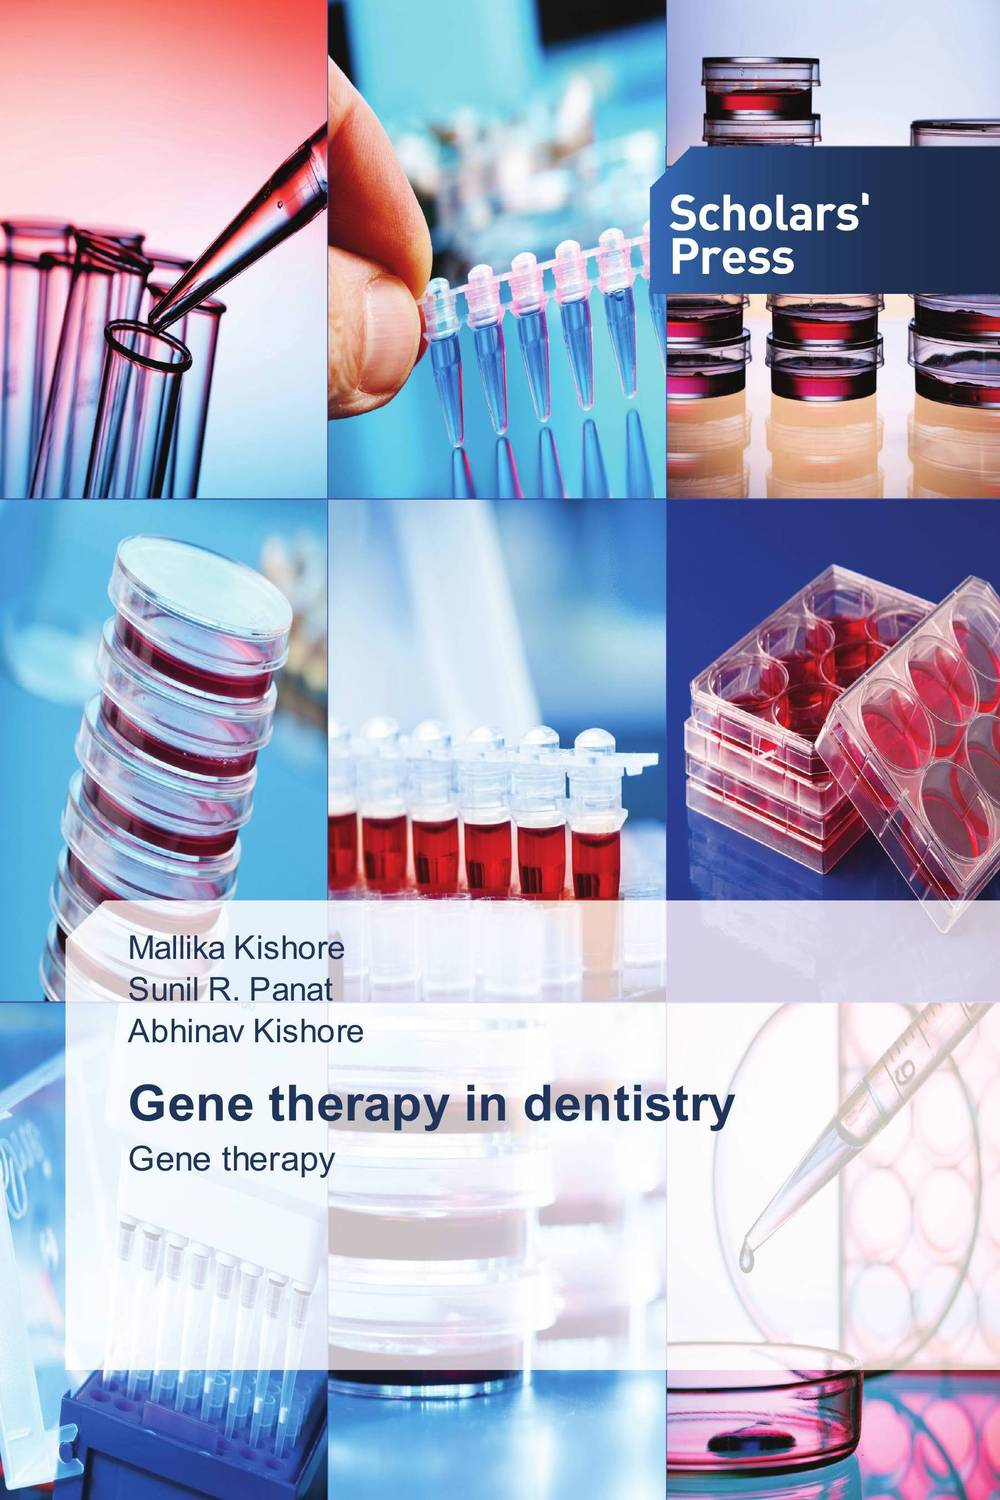 Gene therapy in dentistry gene therapy for breast cancer treatment